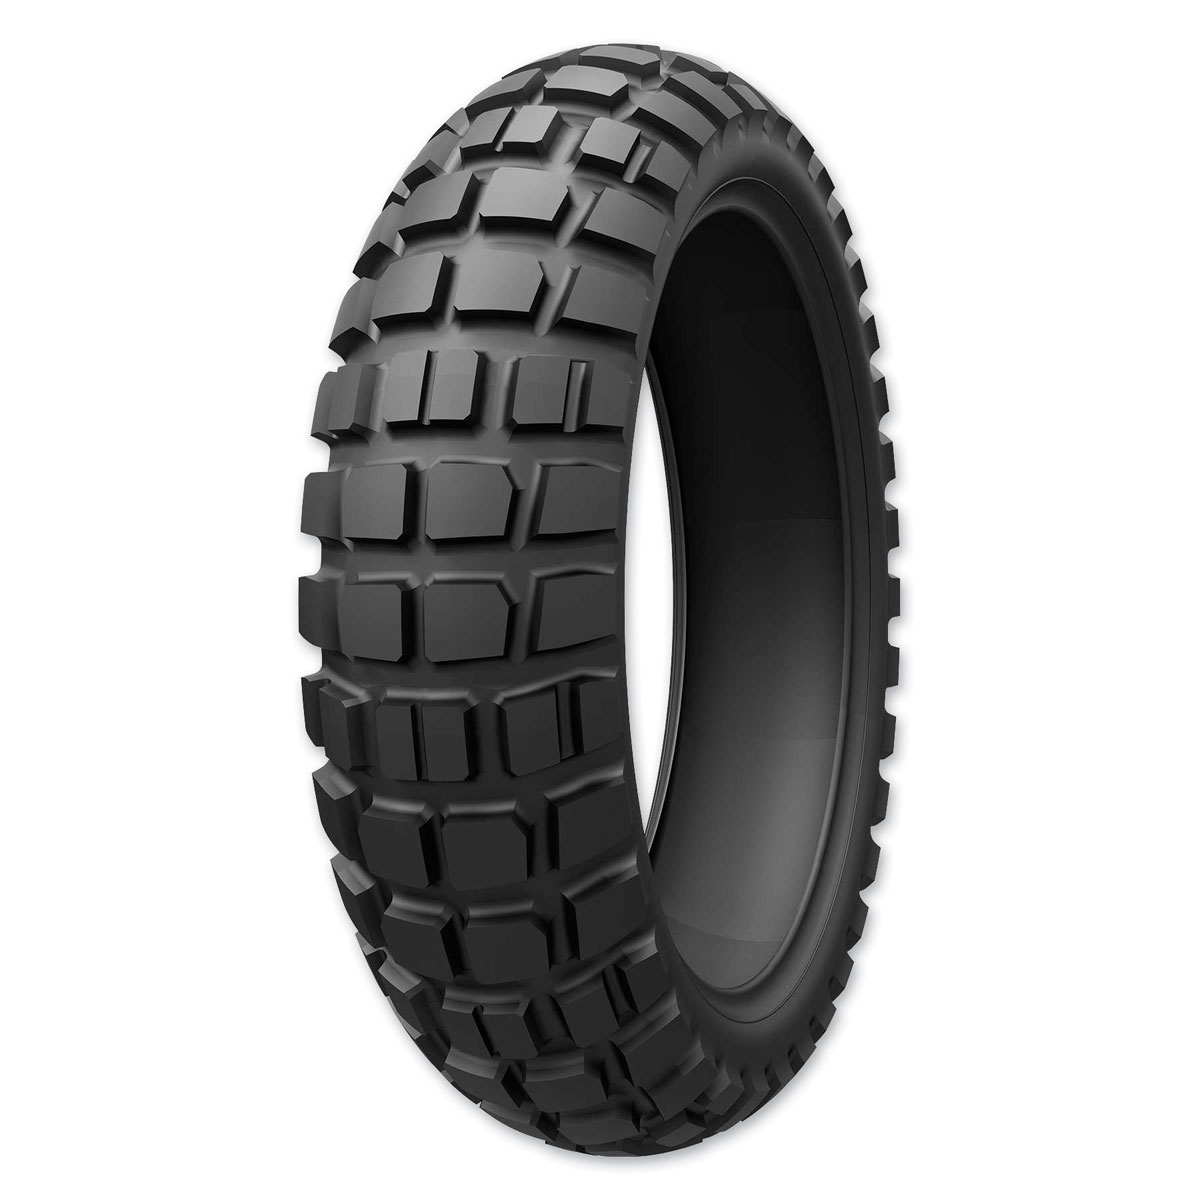 Kenda Tires K784 Big Block 130/80-17 Rear Tire